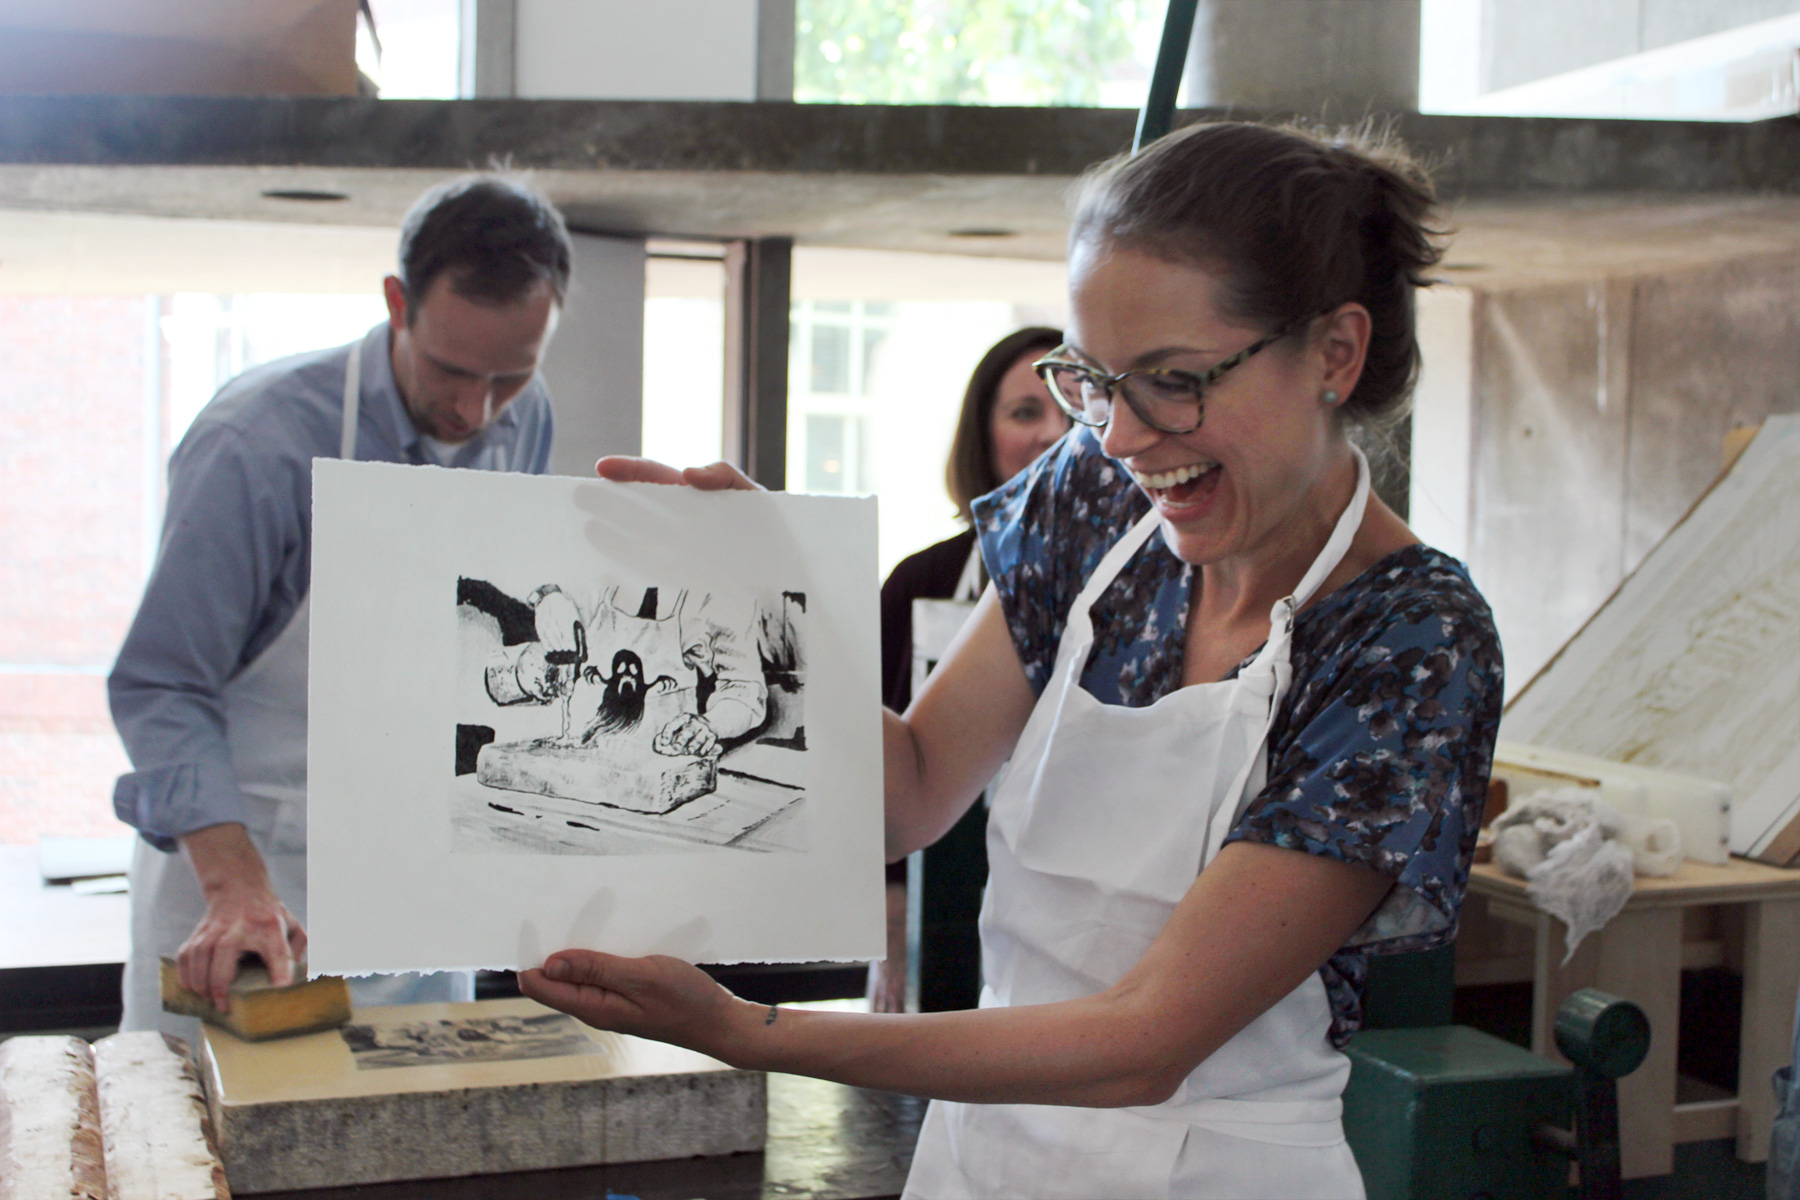 Mardilovich smiles and looks at the lithograph she made in the workshop.